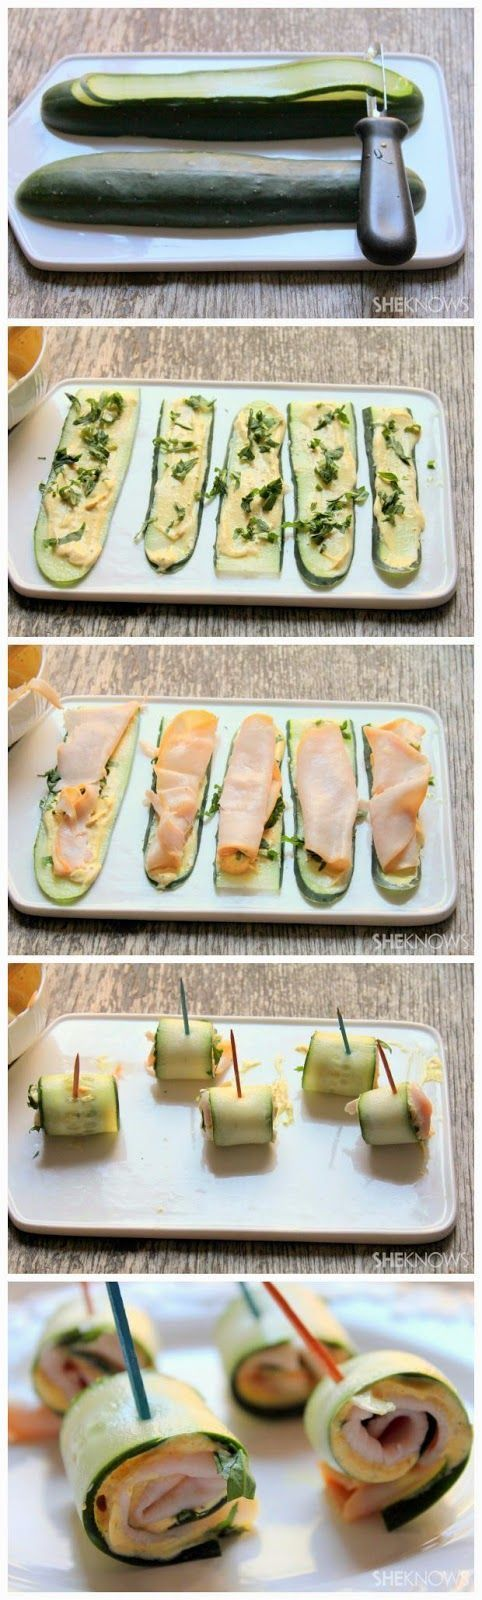 """Good Snack Ideas ♥ Easy Snack Foods """"Sick of boring work lunches? Pack these Cucumber roll-ups with hummus and turkey or replace it with smoked salmon and cream cheese."""""""